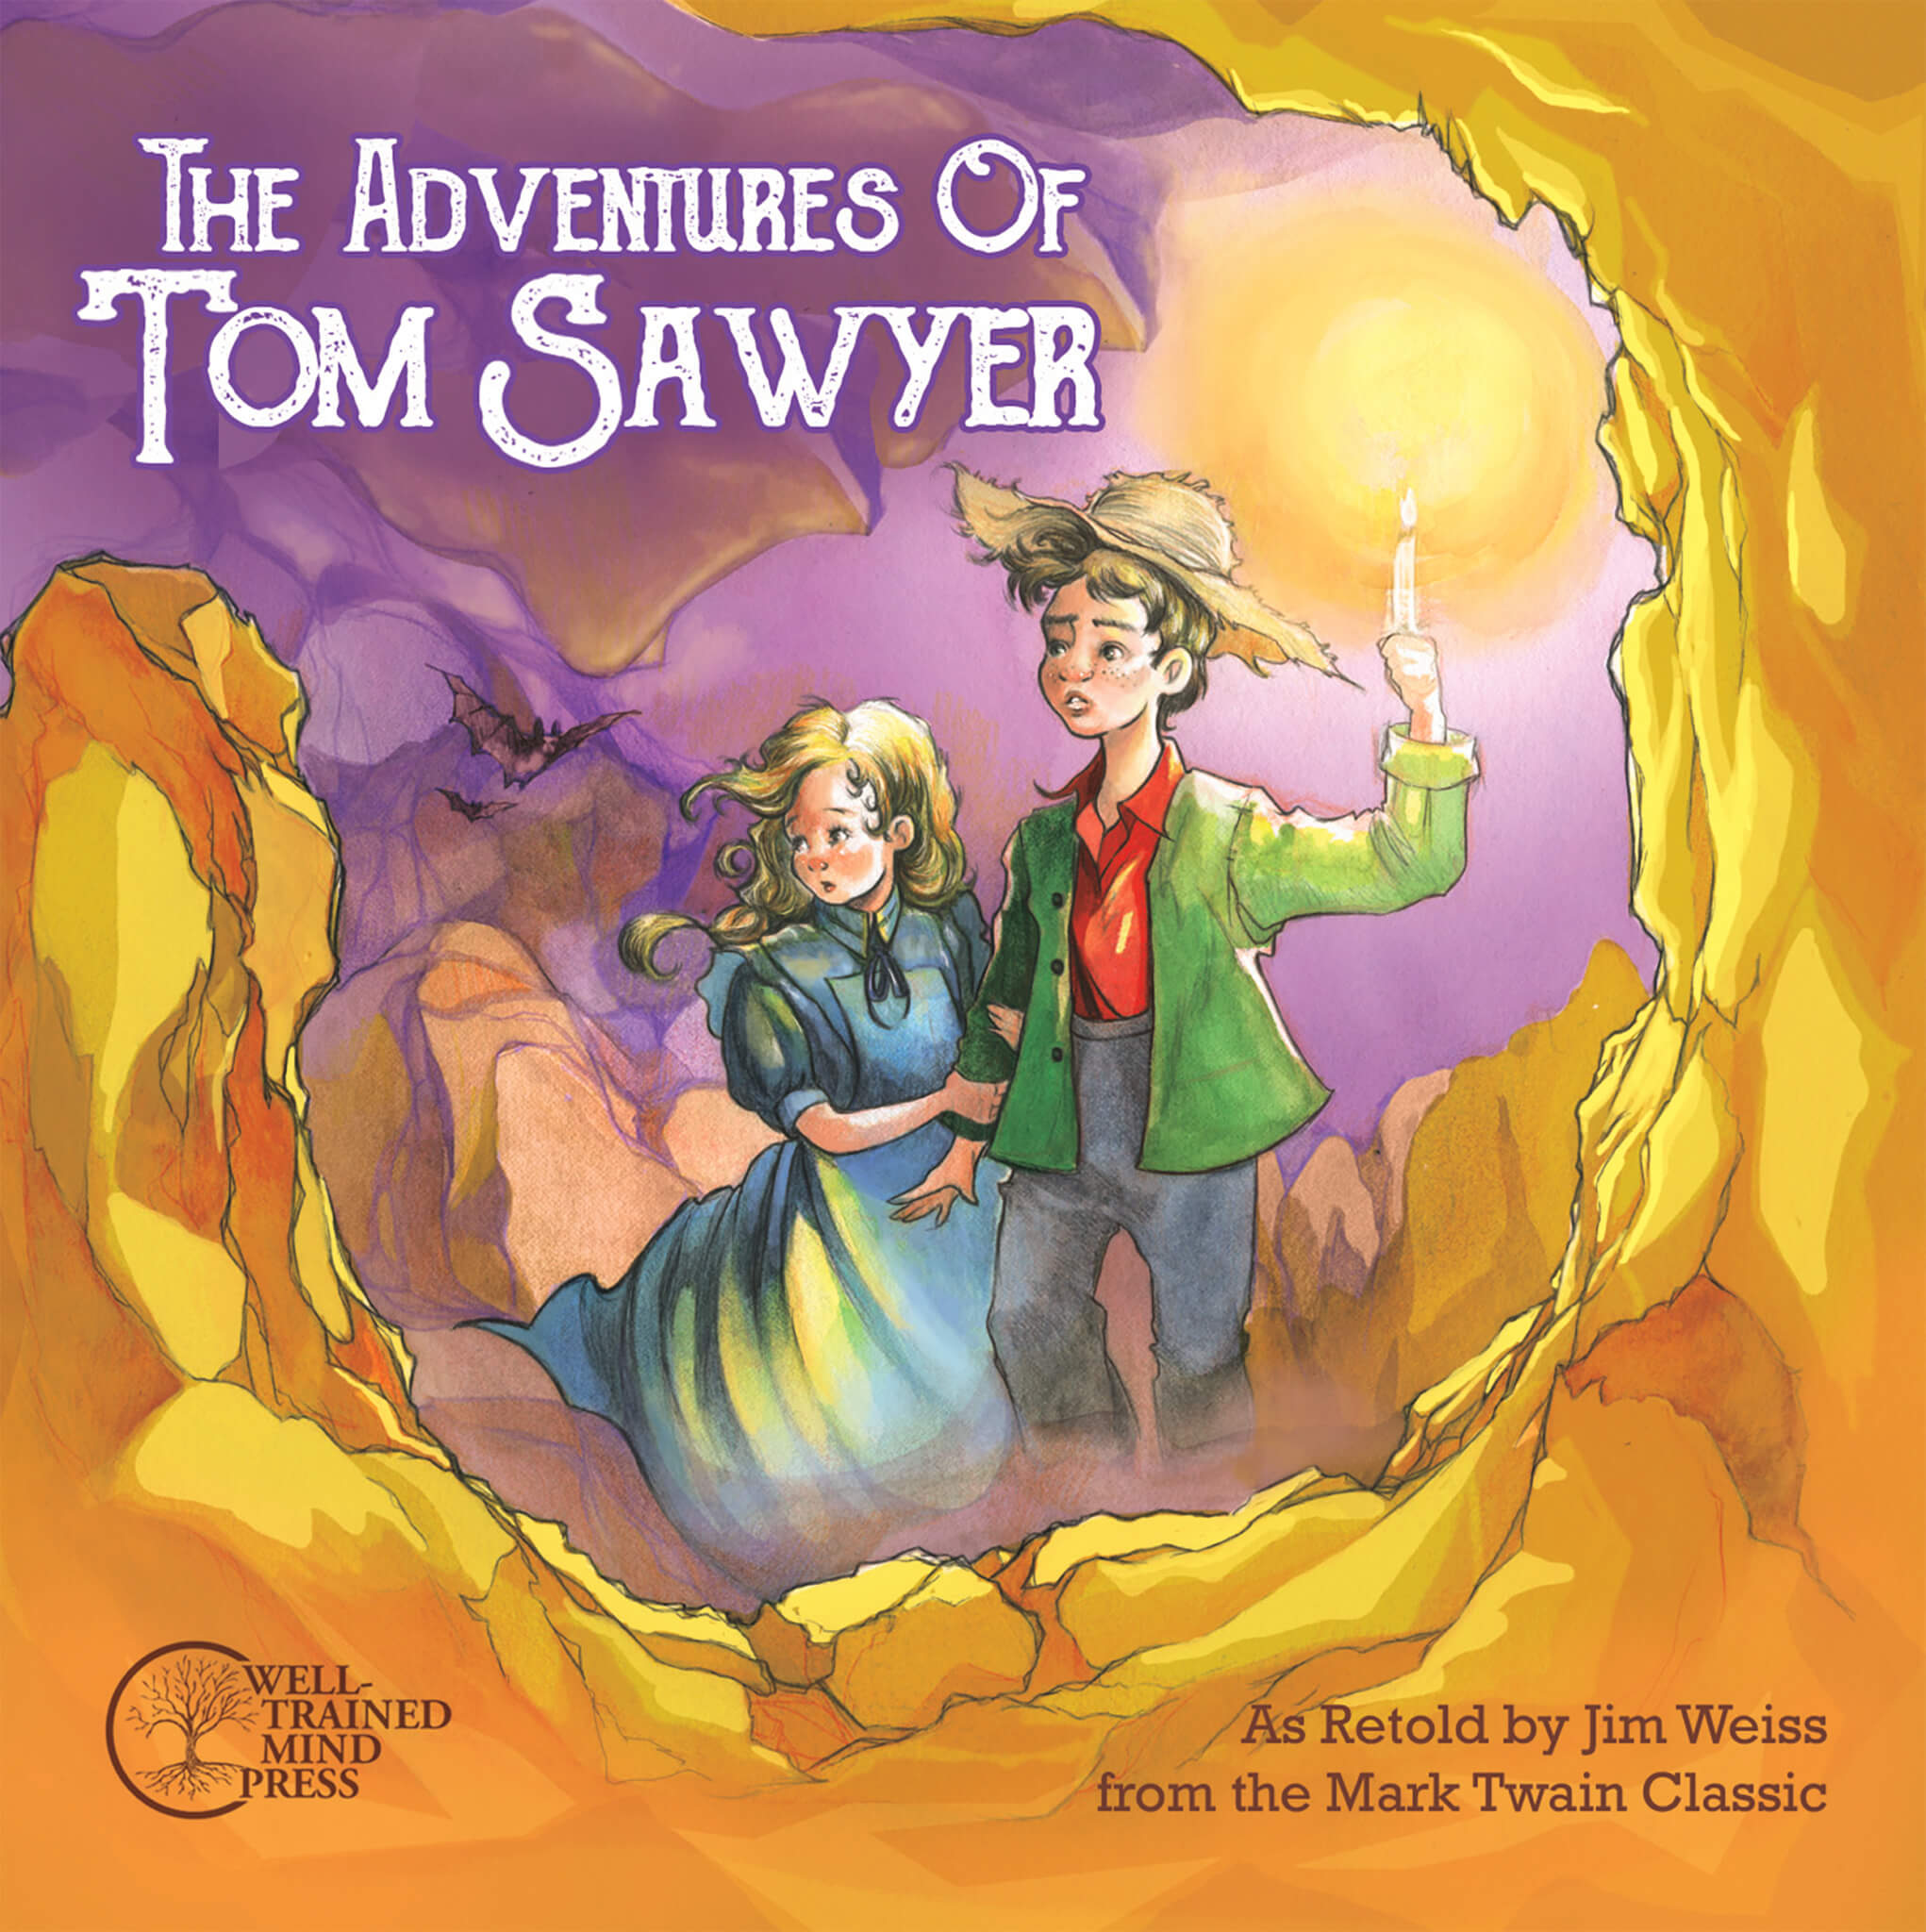 the adventures of tom sawyer is She played little orphan annie and worked with myrna loy, rudy vallee, spencer tracy, gene autry and stanley kubrick.